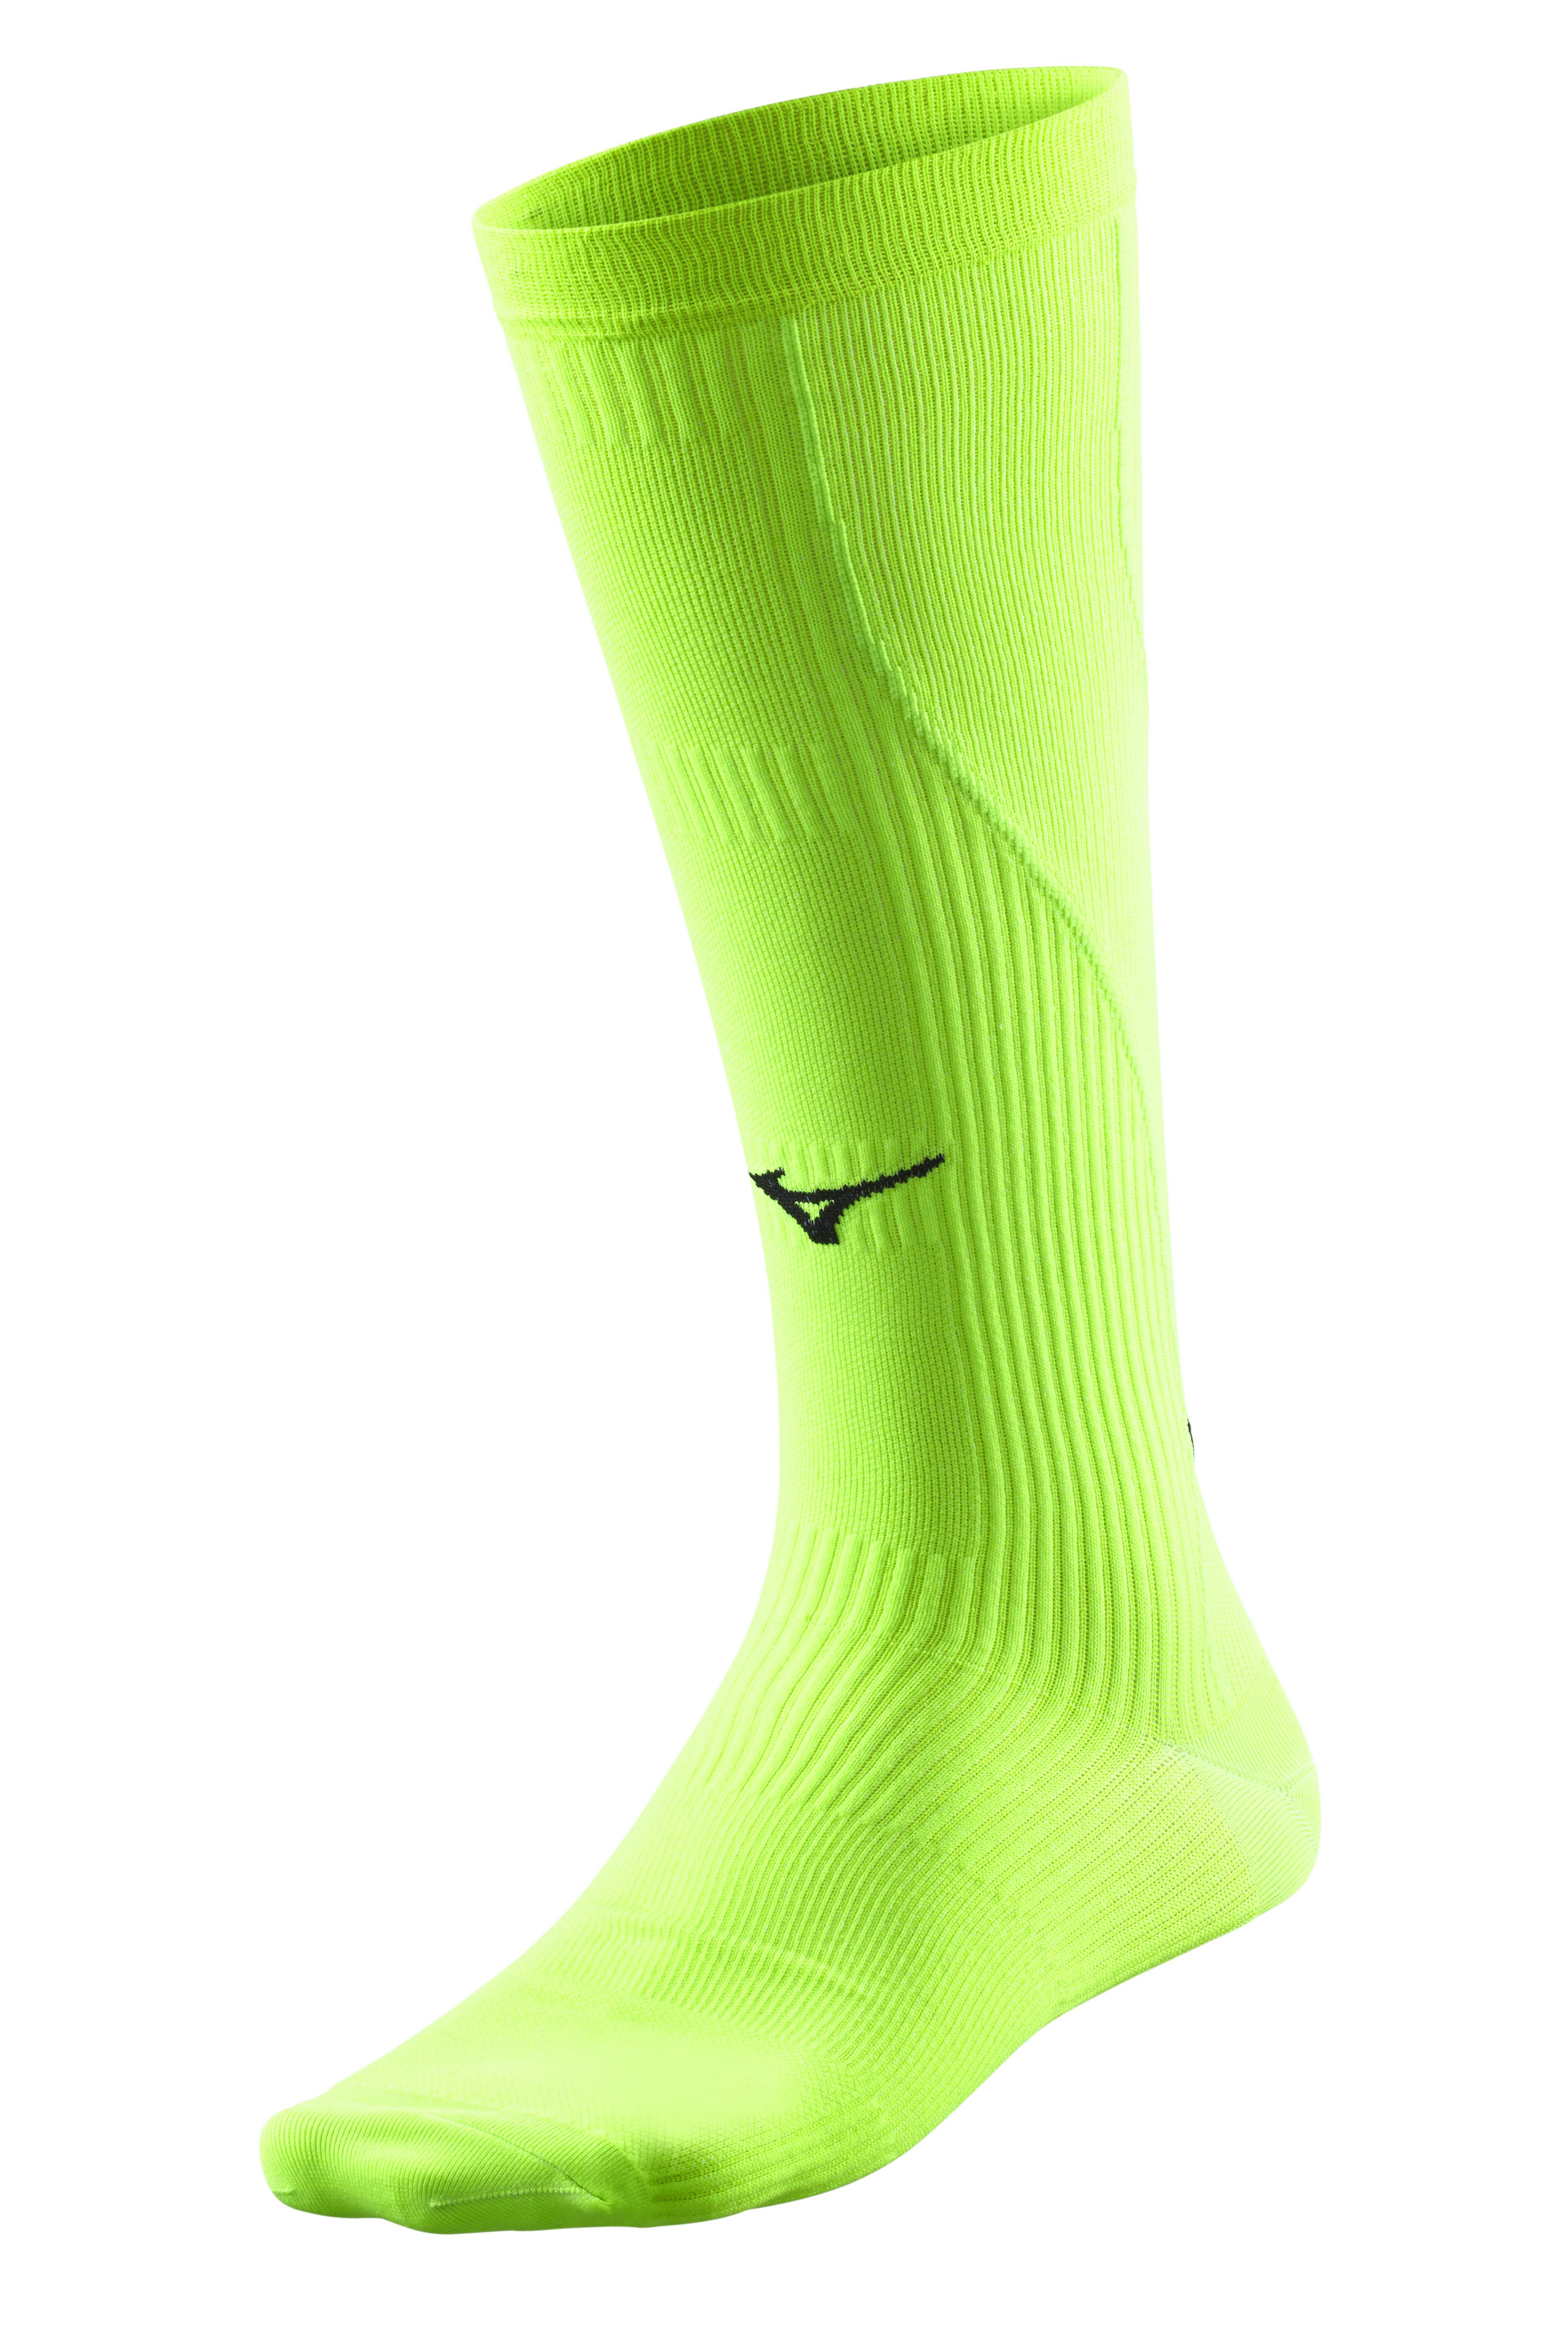 Mizuno Compression Socks J2GX5A10Z35 M